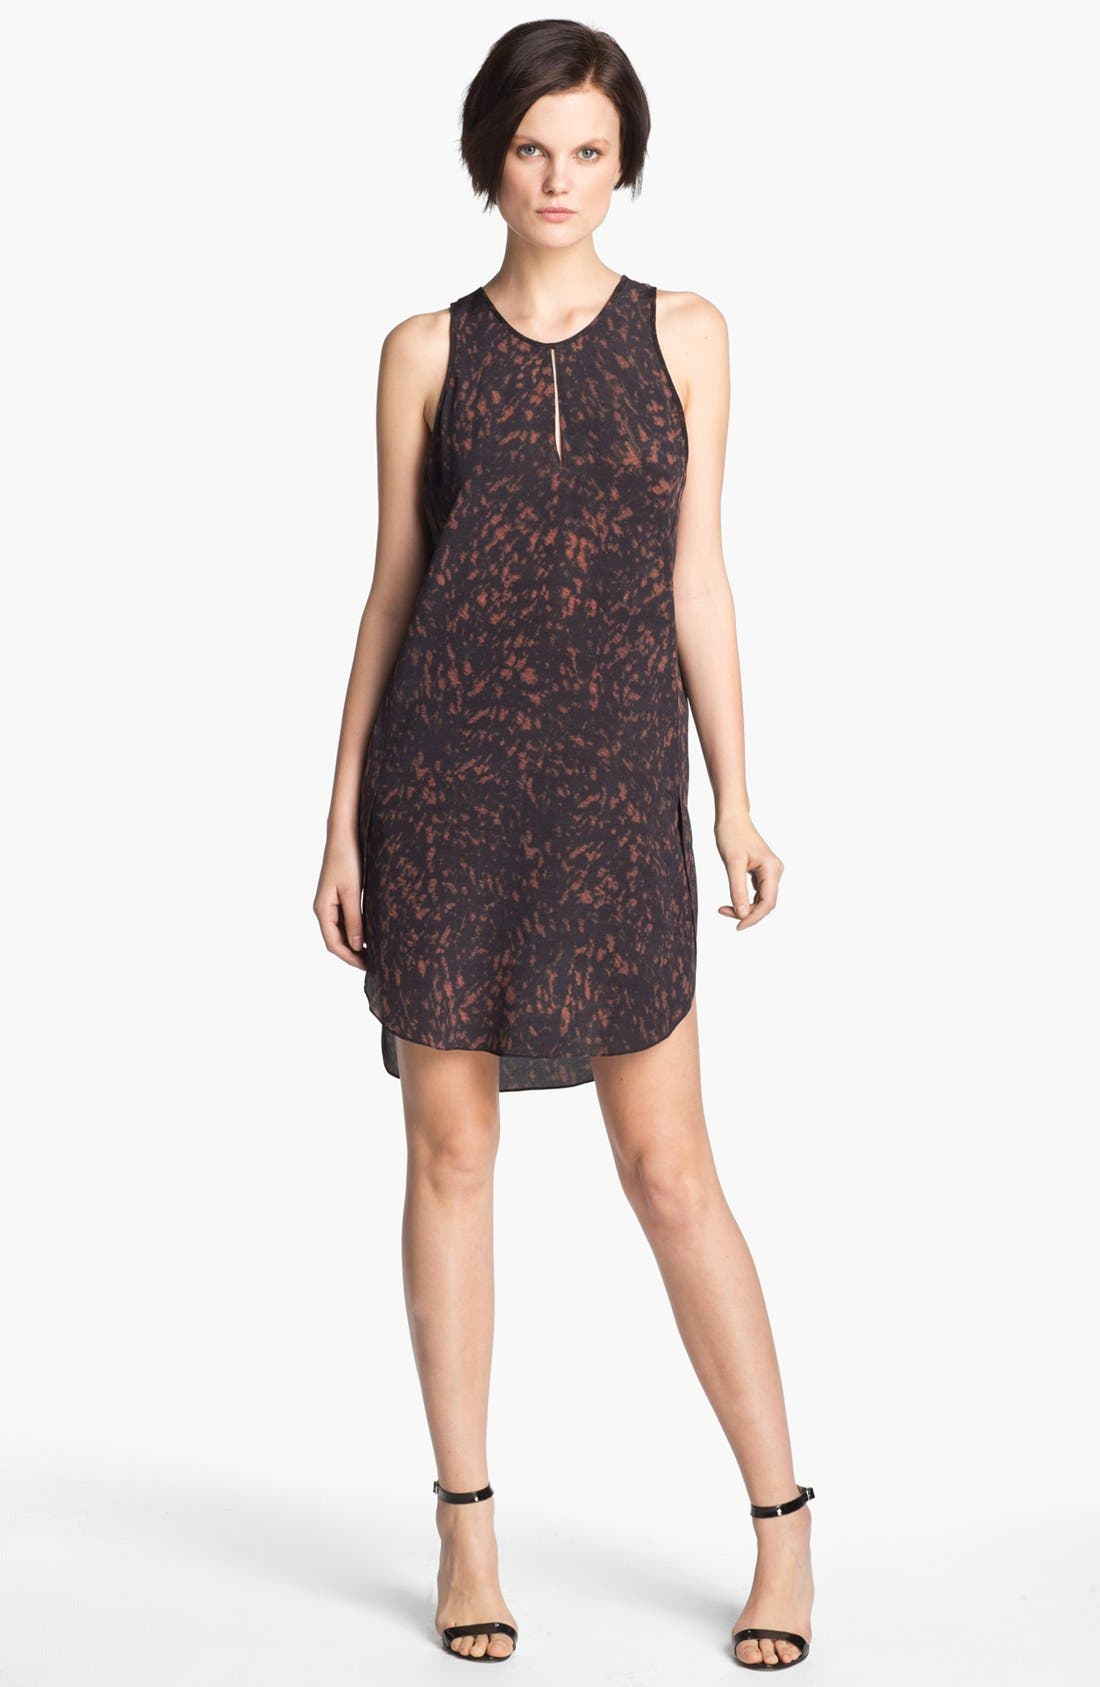 Main Image - 3.1 Phillip Lim Print Silk Tank Dress